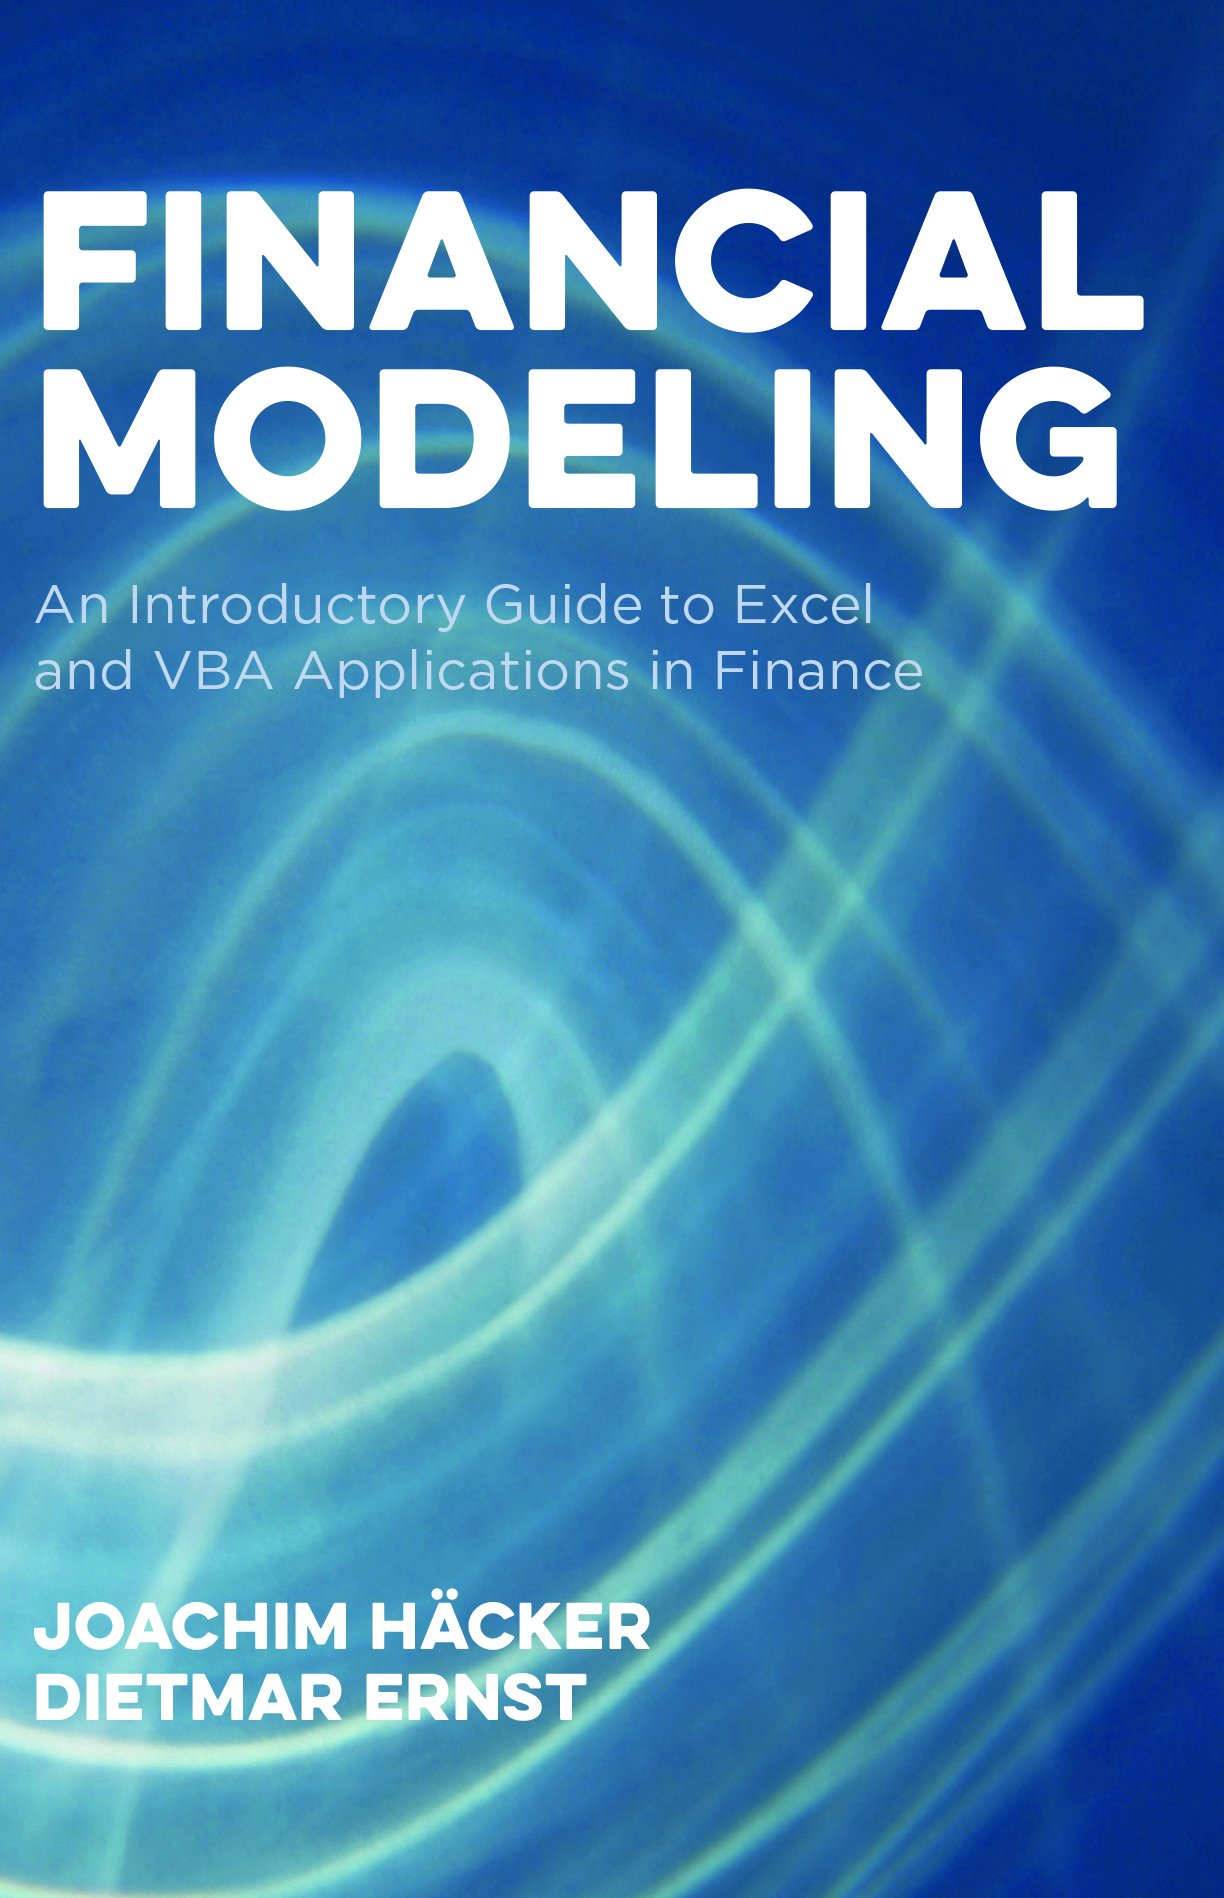 Financial Modeling An Introductory Guide to Excel ...   Amazon.com